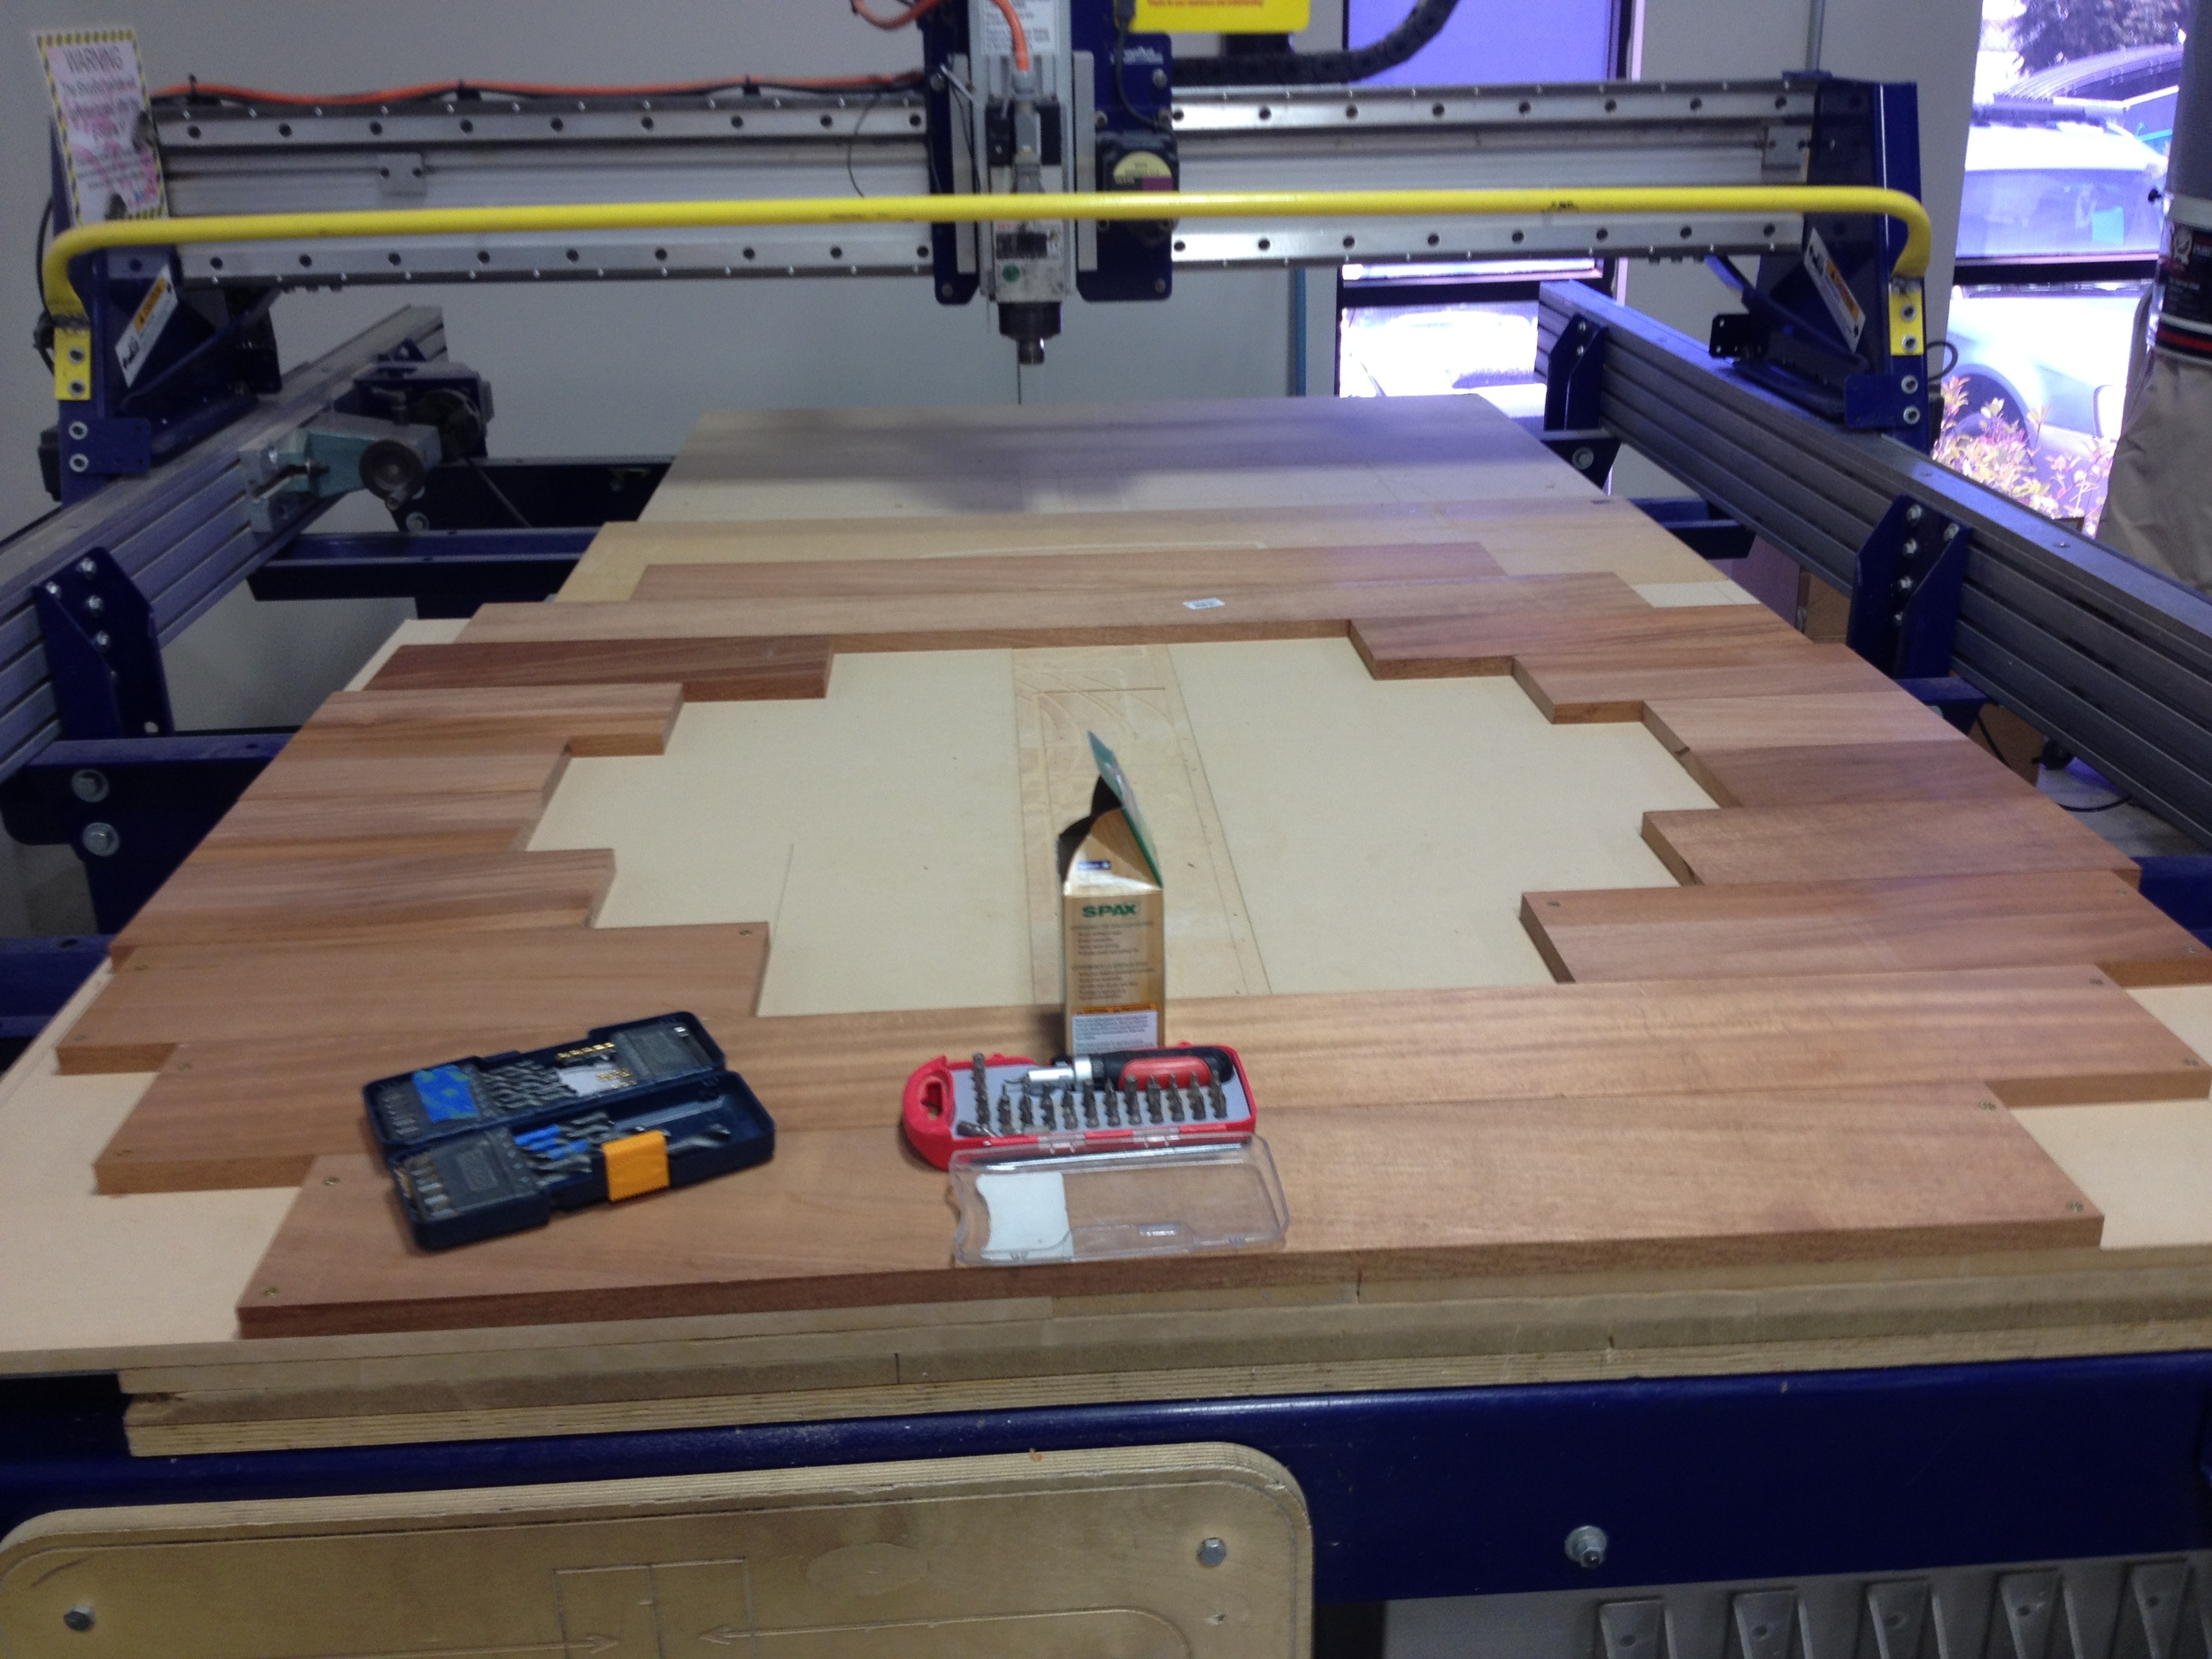 While the final ring may look solid, it is actually made up of 64 individual pieces all glues together in four layers. Here, the mahogany that will comprise the top layer is laid out on the Shopbot table. Before being screwed onto the Shopbot bed, every piece had to be cut to just the right size so that the final layout would accommodate the ring design while avoiding unnecessary waste. Each piece also had to be carefully abutted with its neighbors so there would be no cracks after the final assembly.